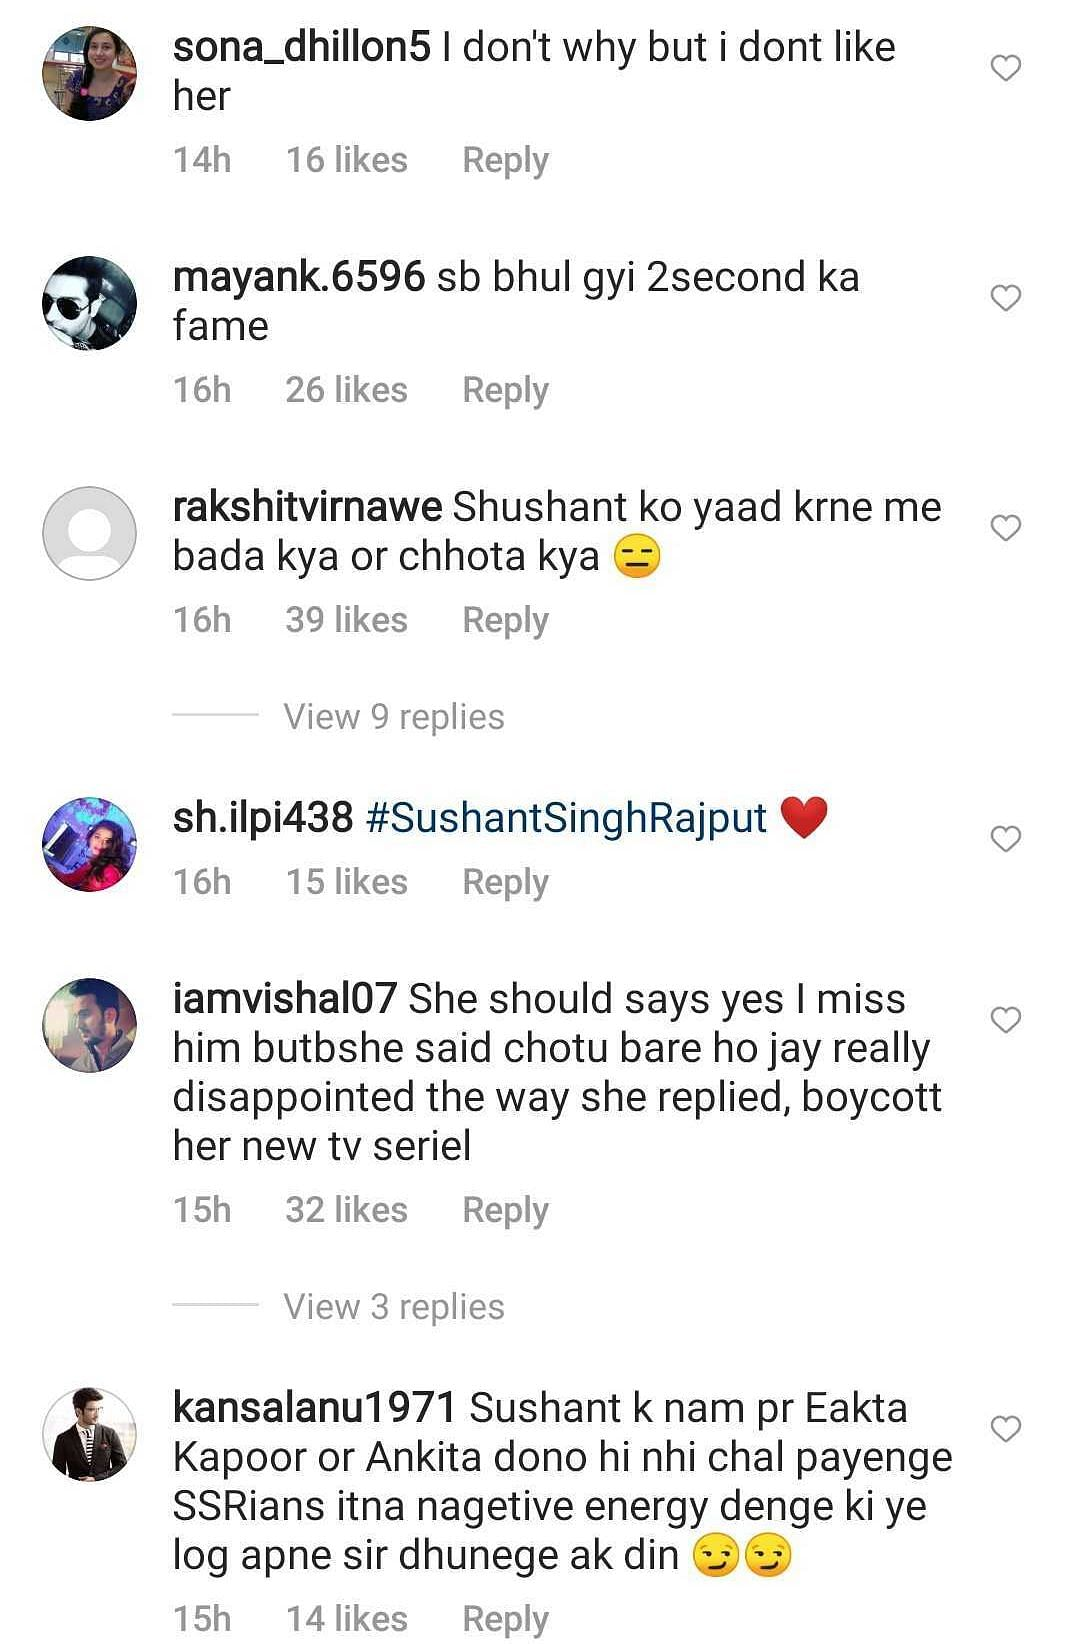 Watch: Ankita Lokhande trolled for saying 'grow up' on being asked about Sushant Singh Rajput